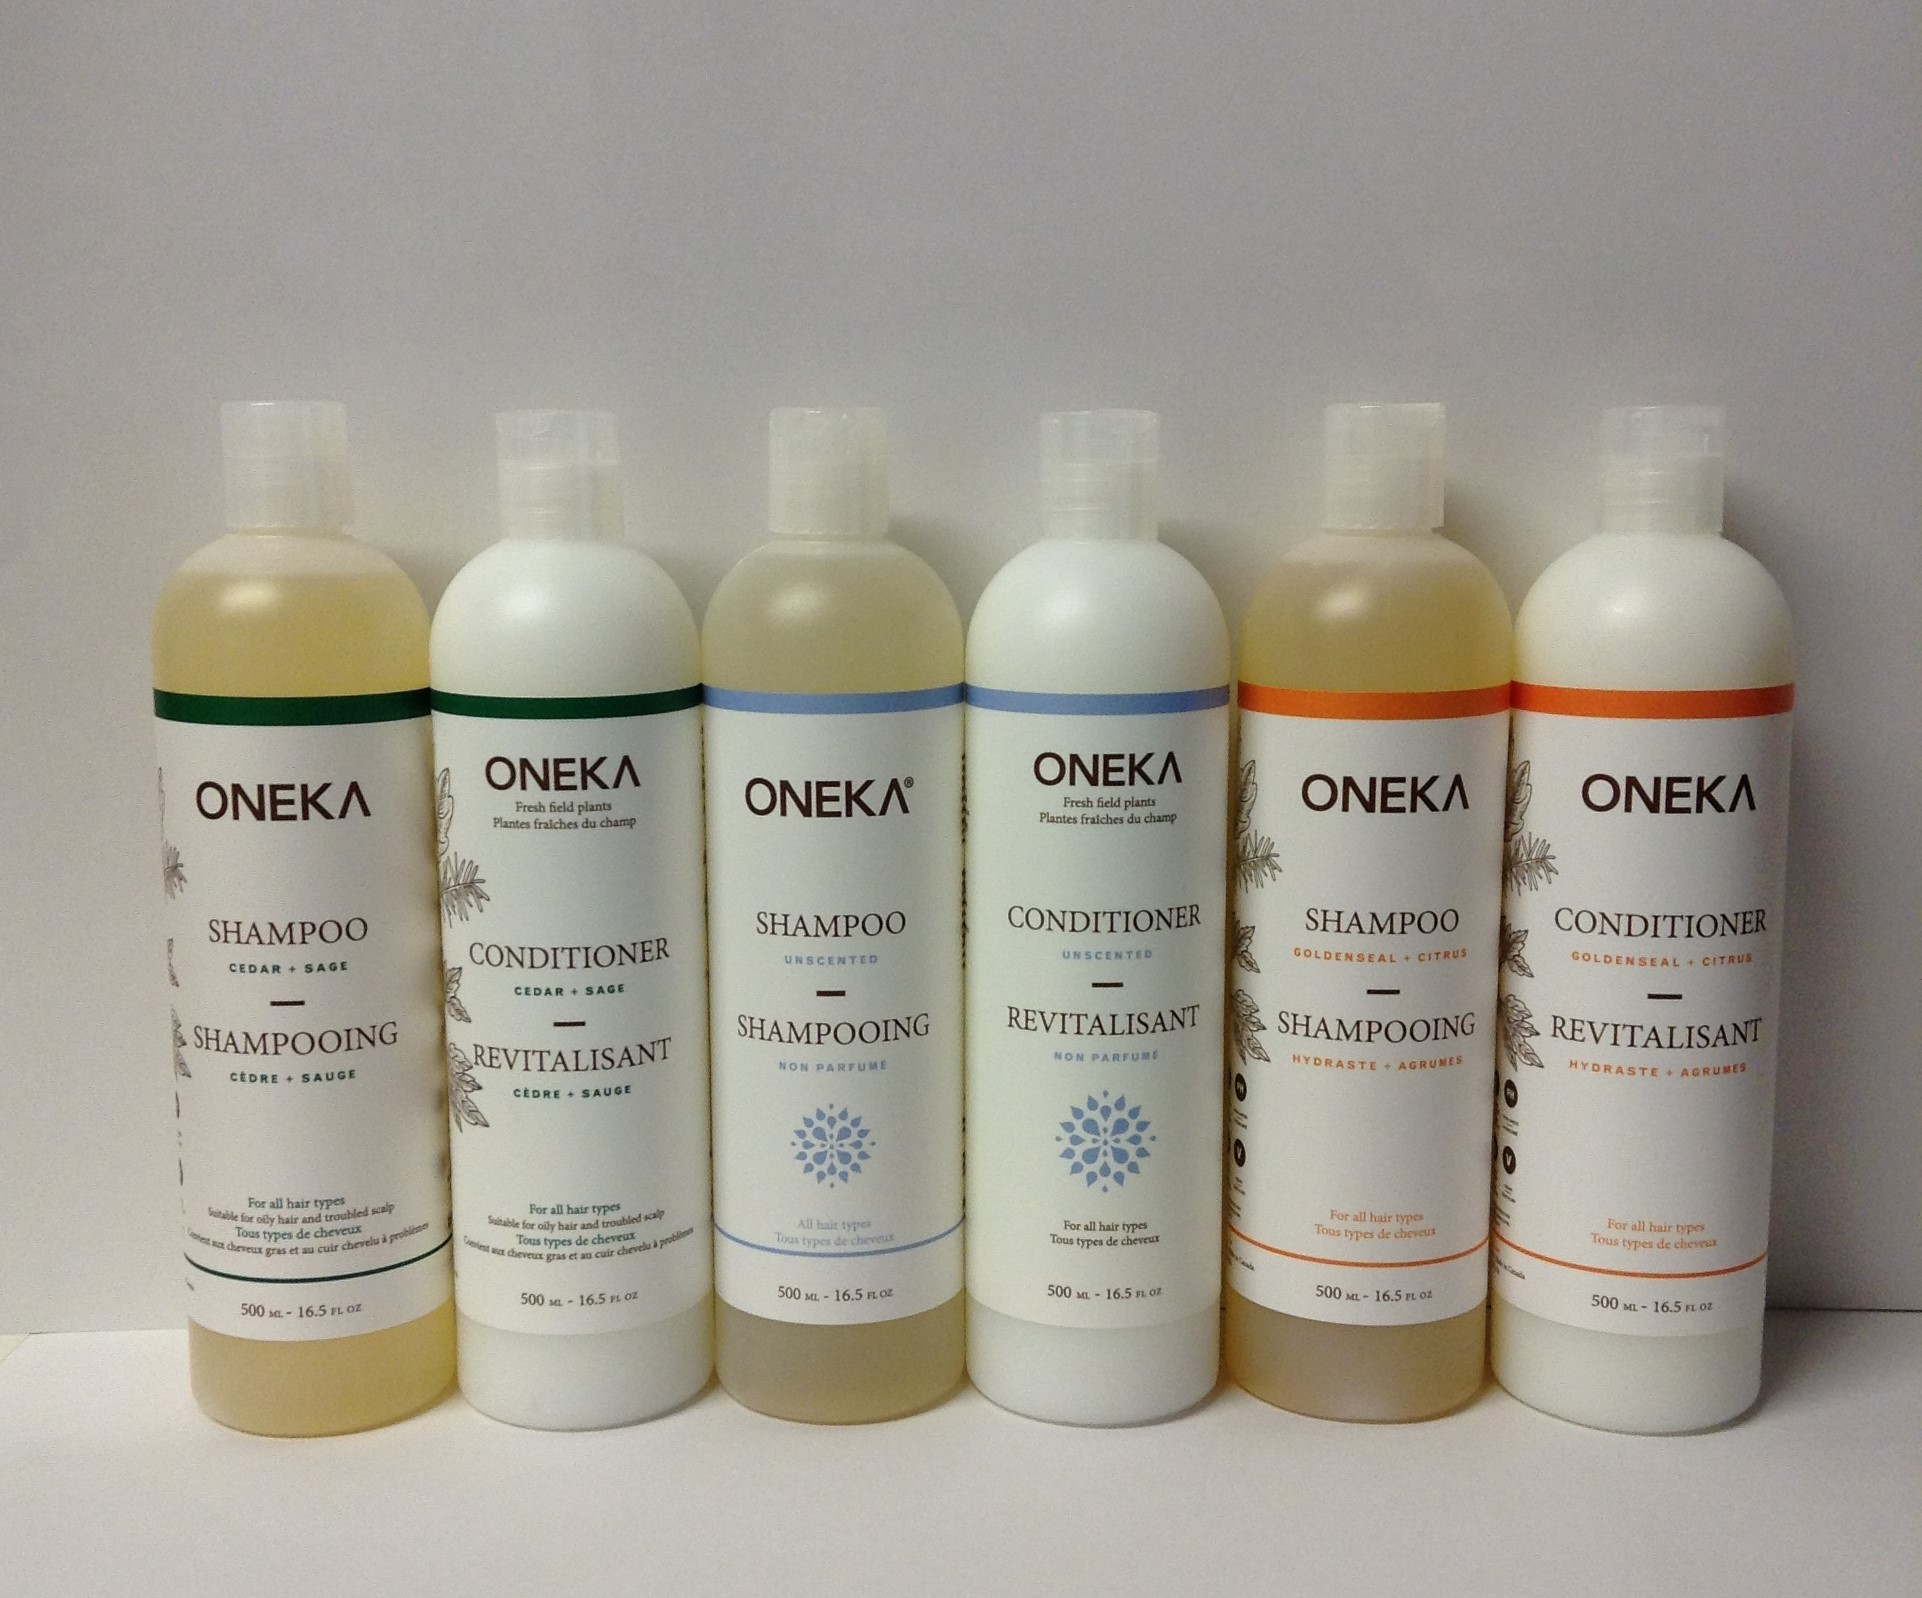 ONEKA Hair Care